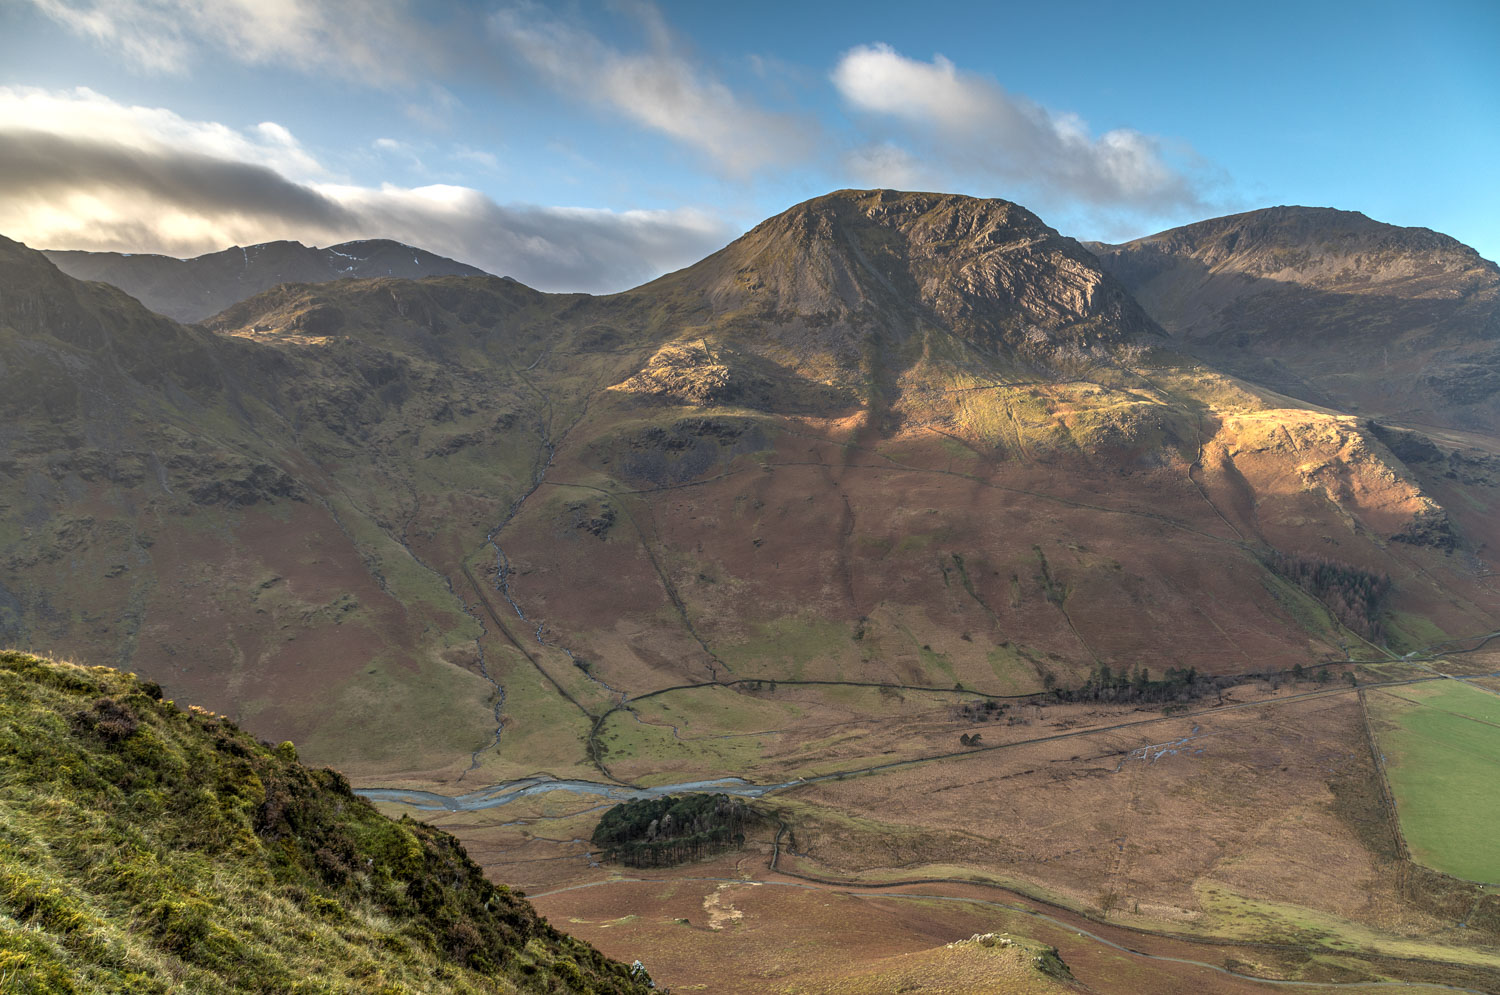 High Crag, Buttermere pines